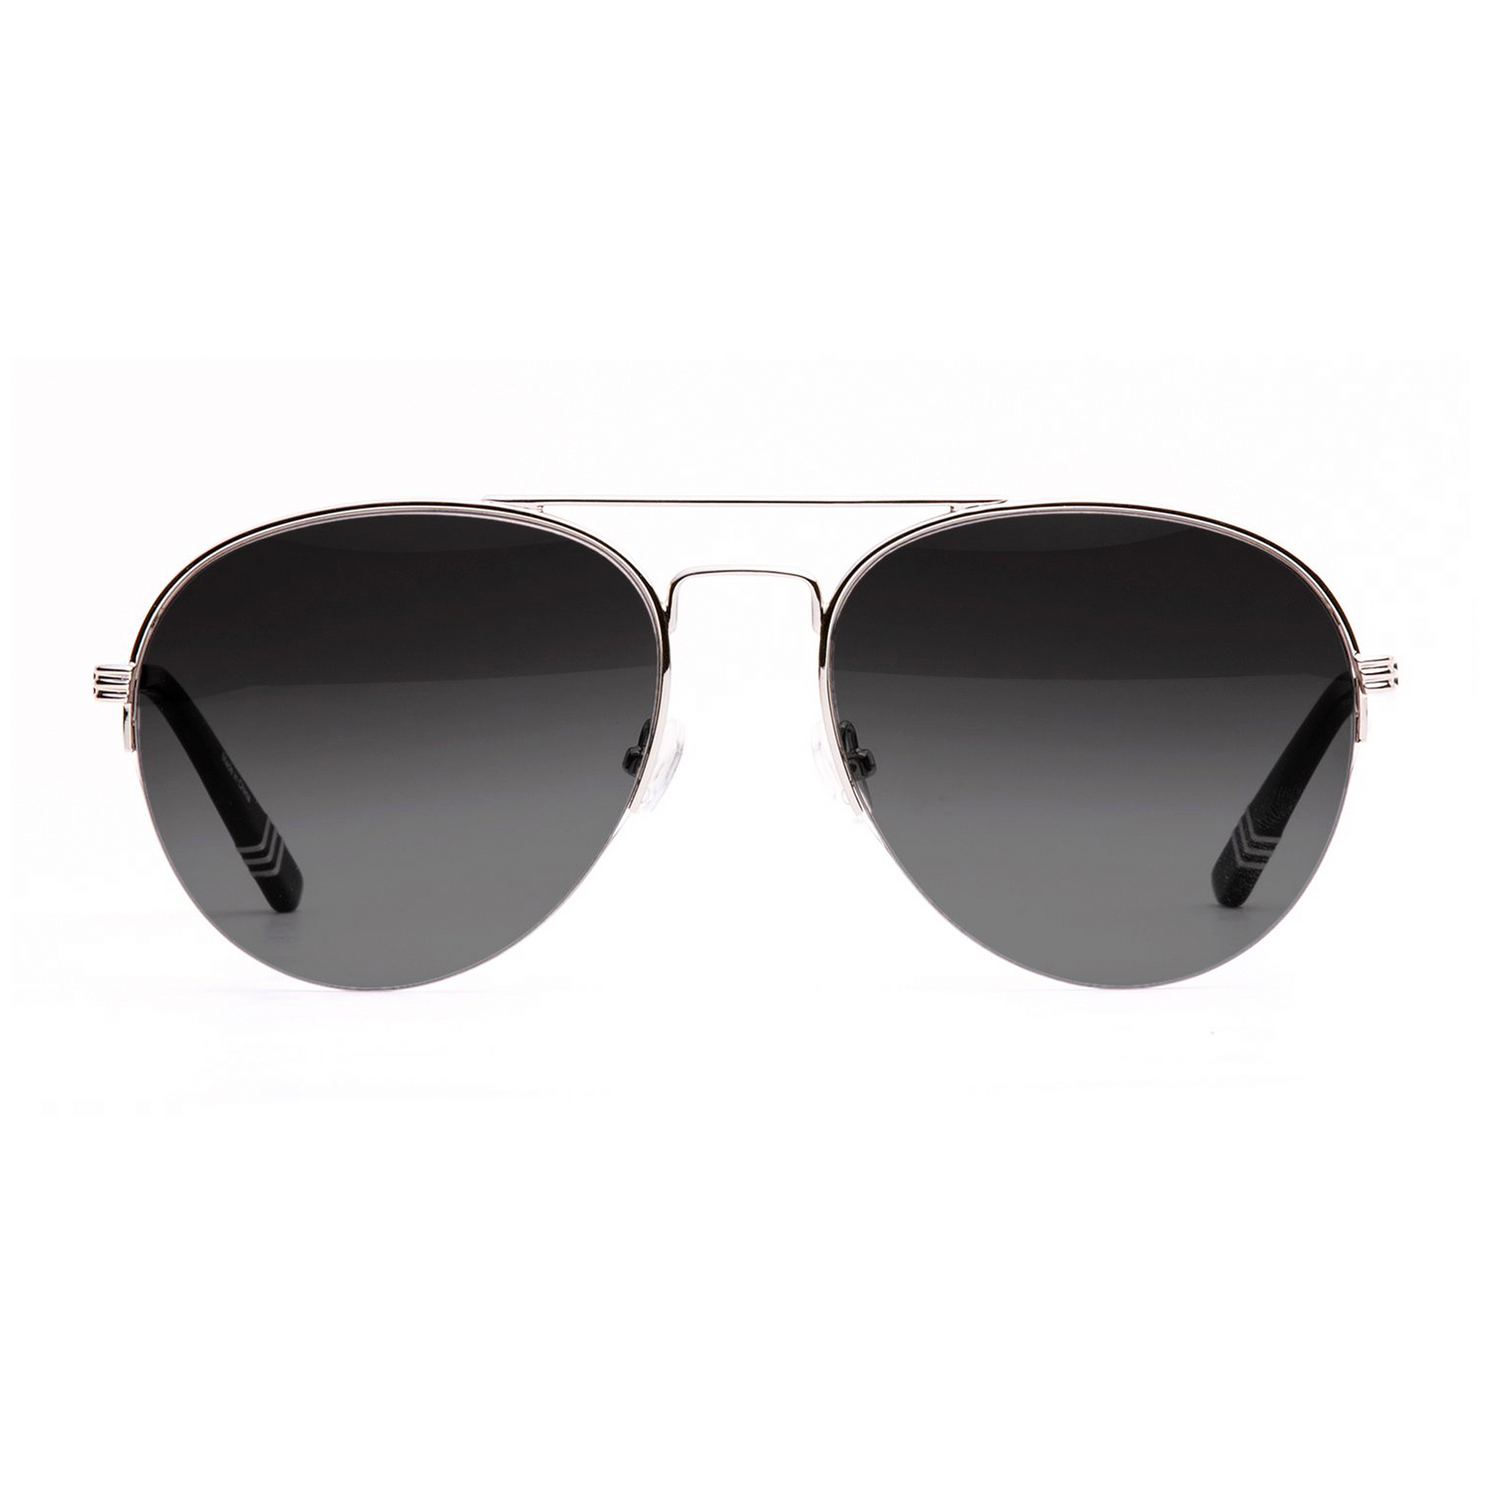 silver-frames-with-black-gradient-lenses-and-black-acetate-temple-tips